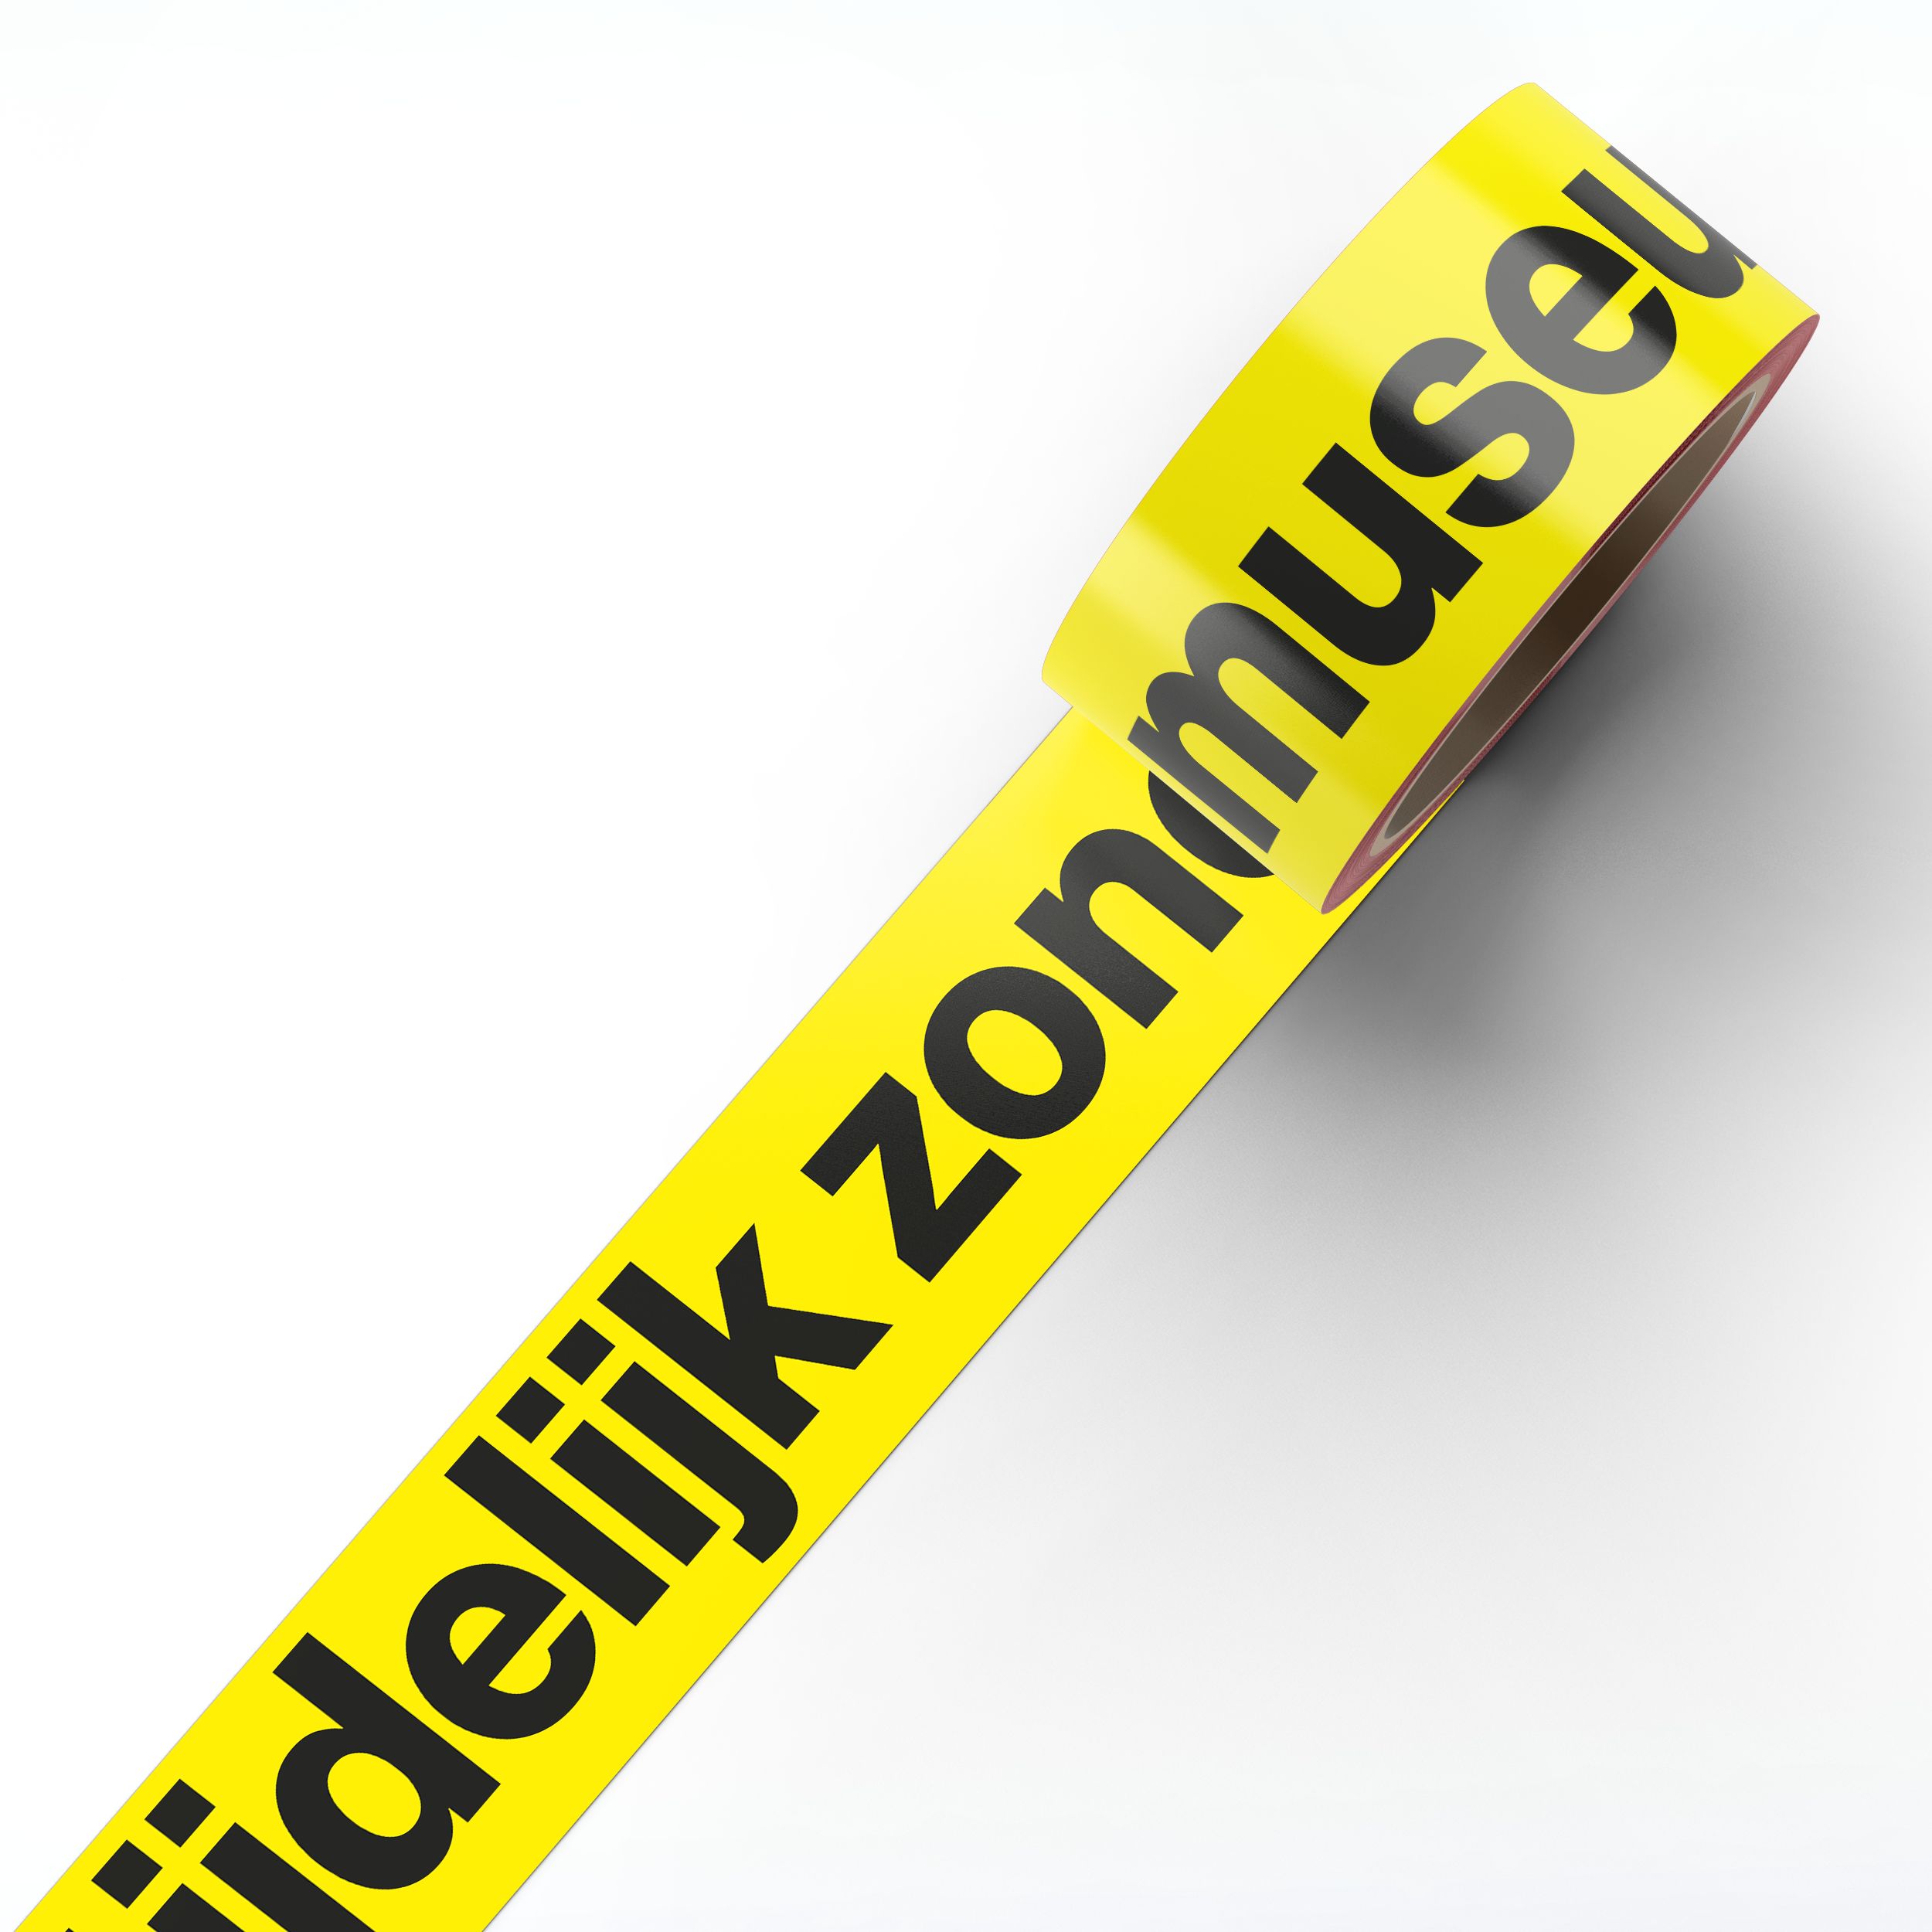 10-Duct-Tape-Sellotape-Mock-Up_2